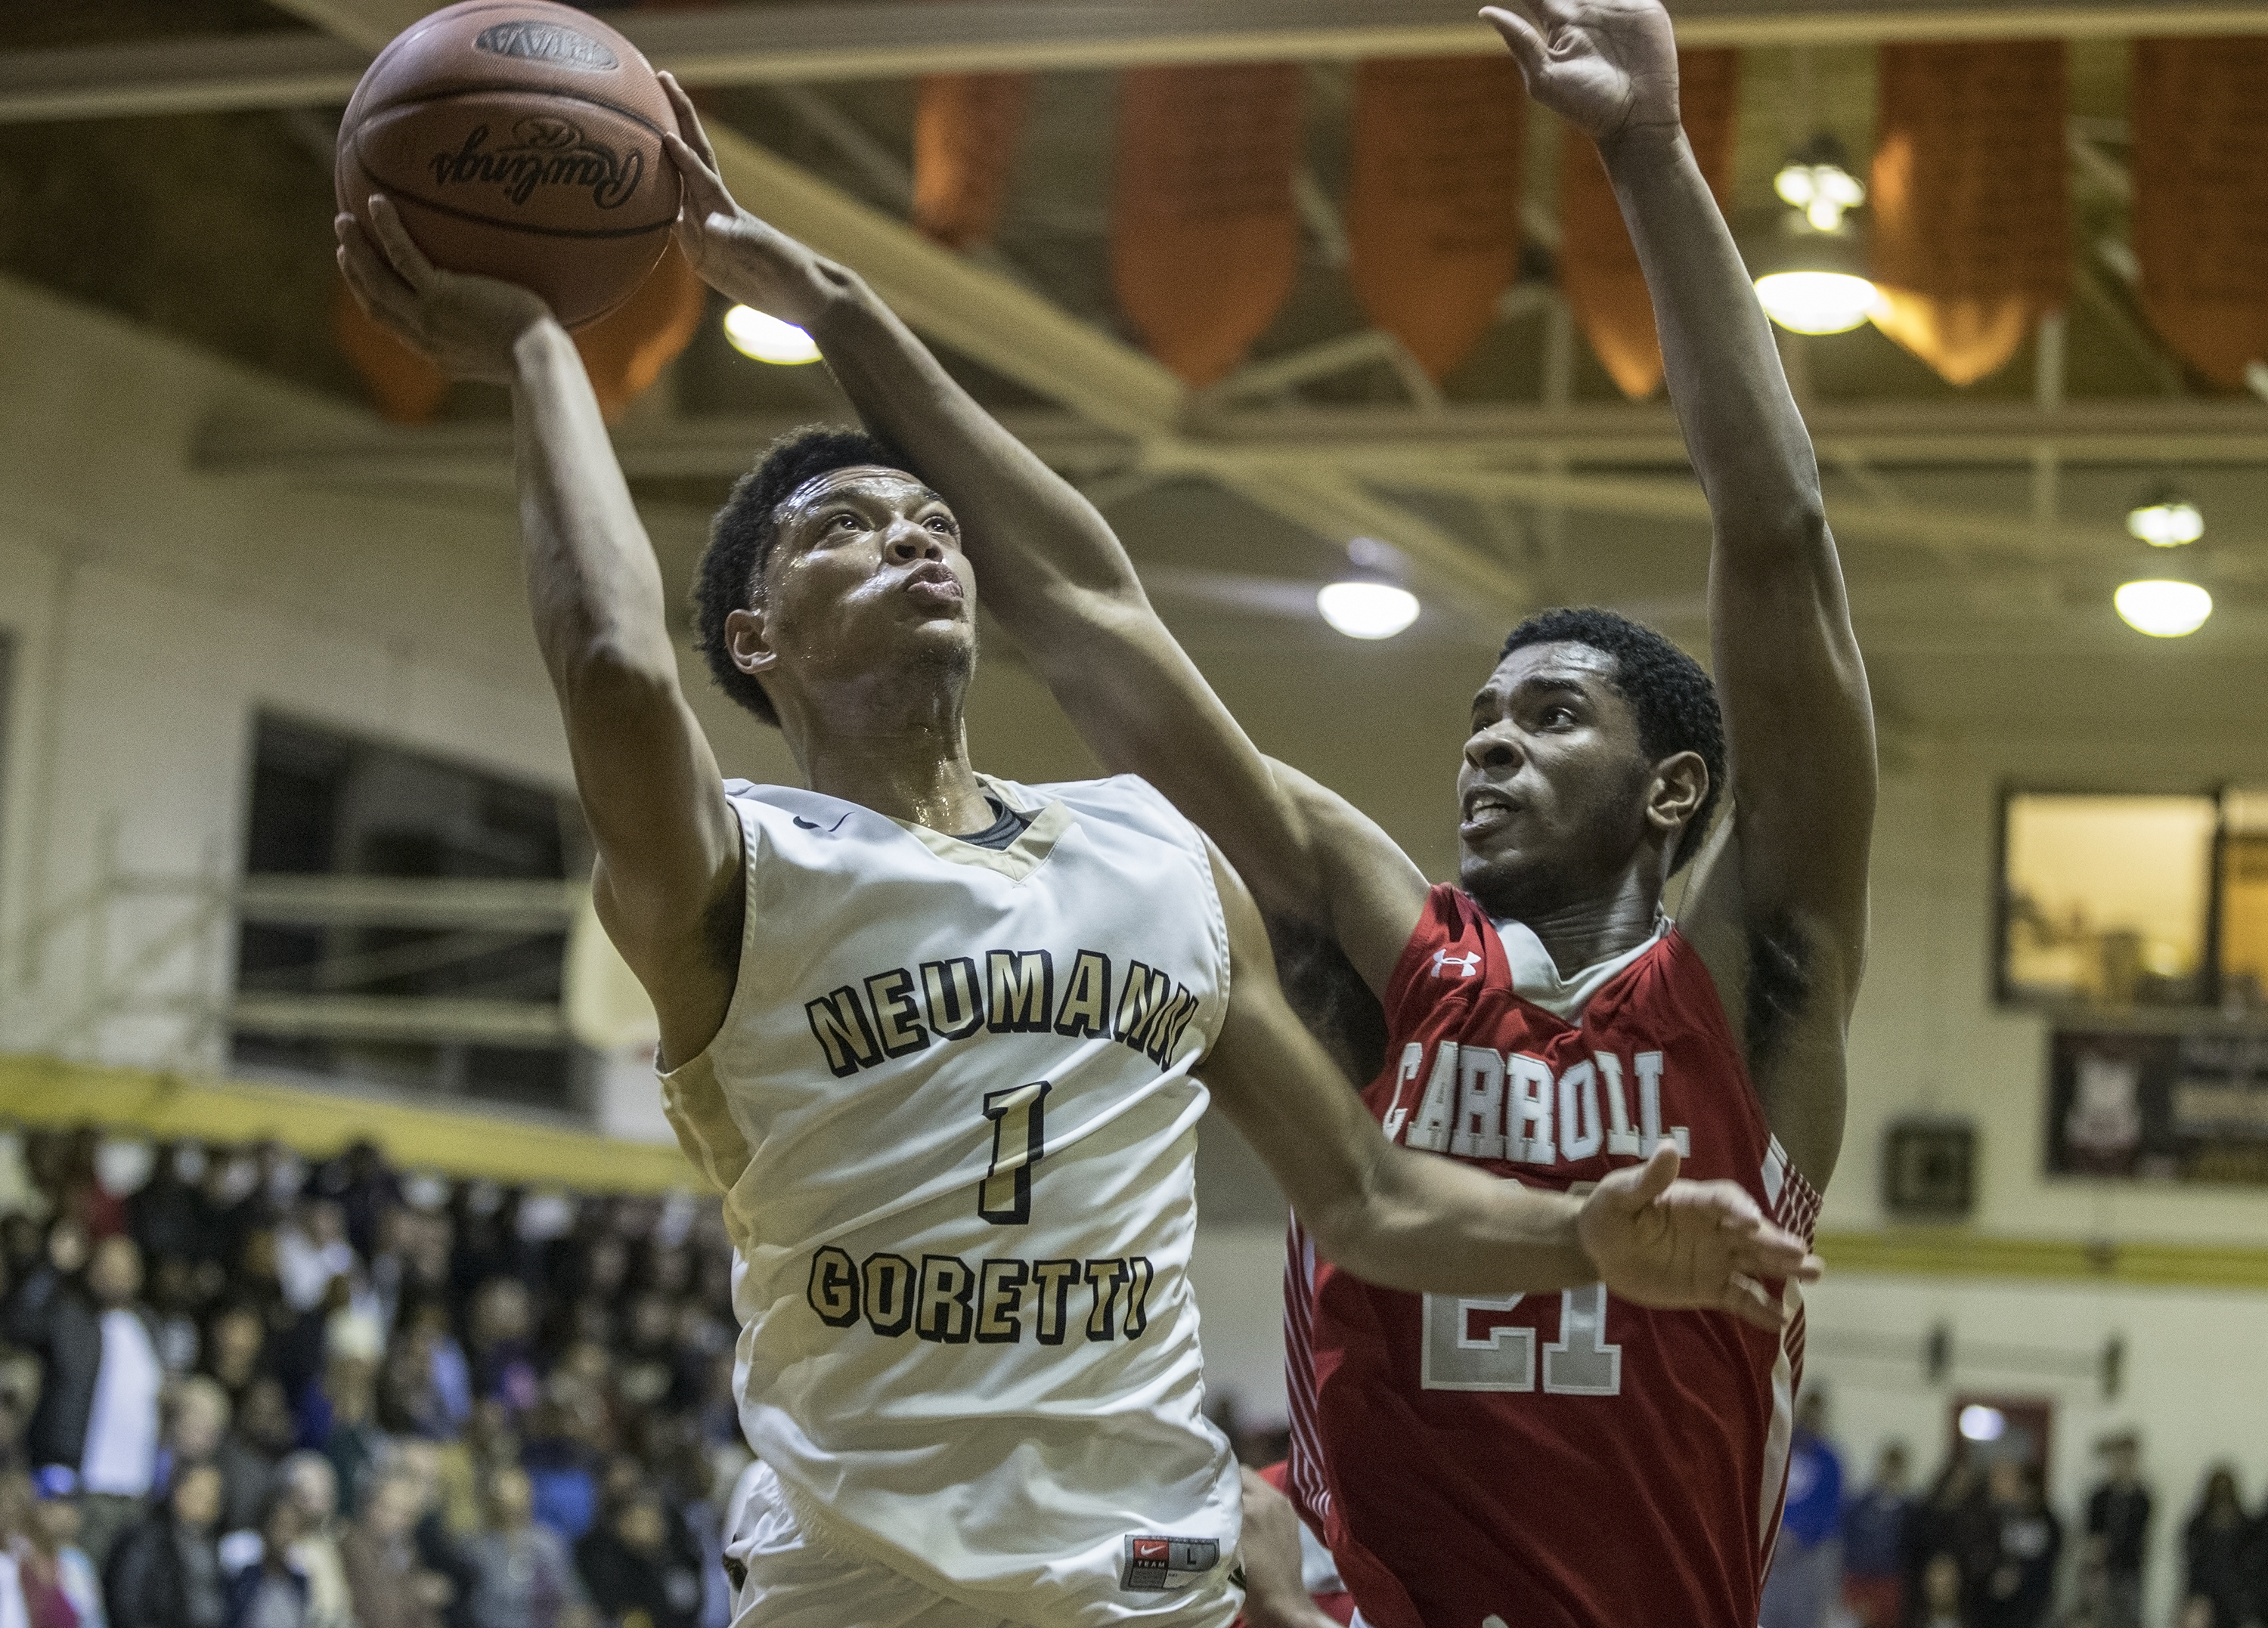 Neumann-Goretti's Quade Green, left, #1, fends off Archbishop Carroll's #21, Jesse McPherson, right, as he takes the ball to the basket during Tuesday night's game. Neumann-Goretti seniors Quade Green and Dhamir Cosby-Roundtree are the top pair of high school players. Green will be at Kentucky next year, Cosby-Roundtree at Villanova. We show how they live the game of basketball. 01/03/2017 MICHAEL BRYANT / Staff Photographer